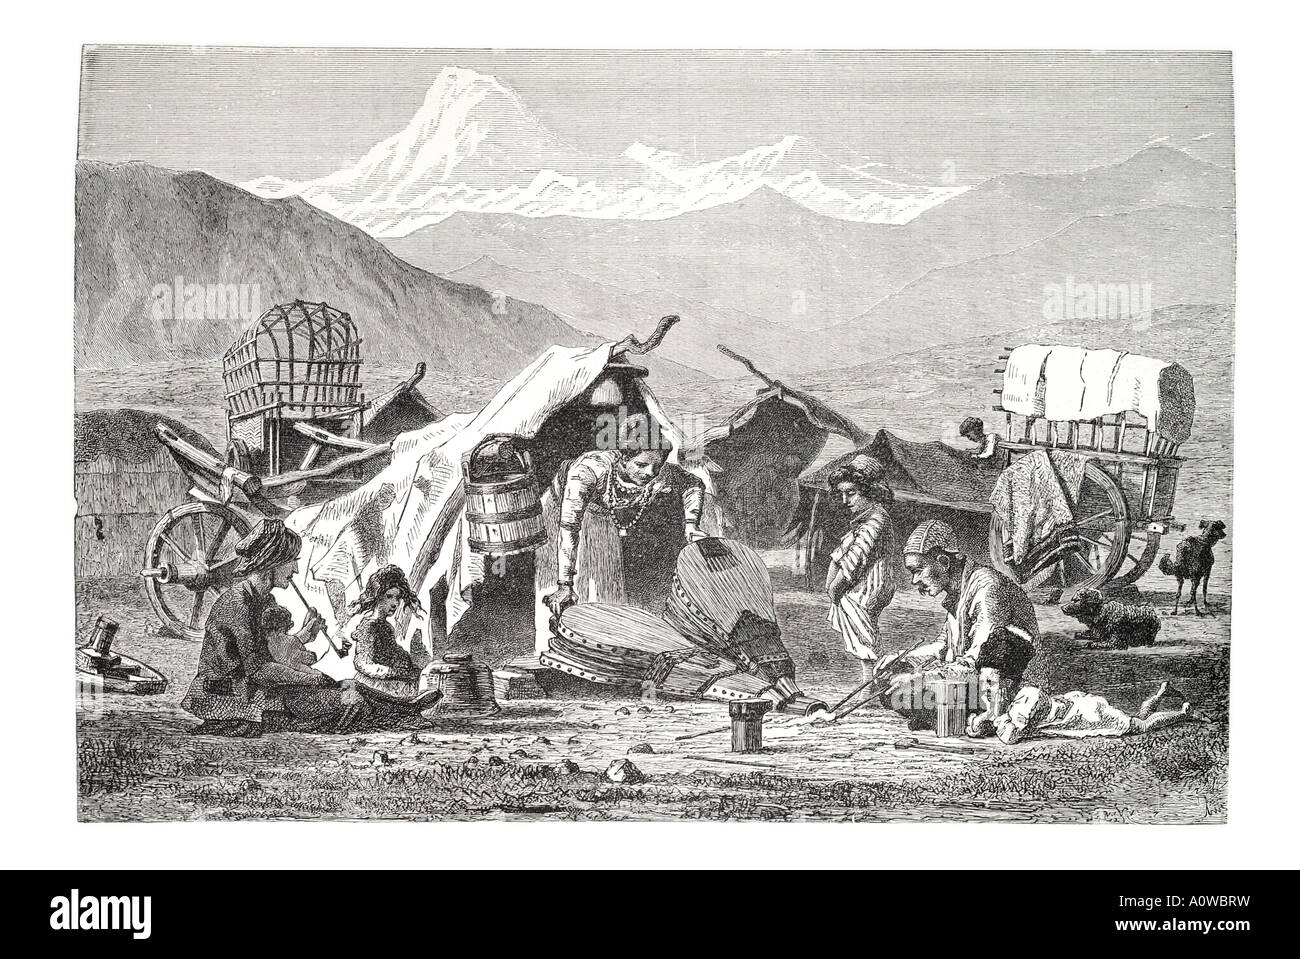 gipsy camp Caucasus work bellow smelt fire horse wagon cart family smoke pipe bucket mountain Armenia Russia nomad - Stock Image